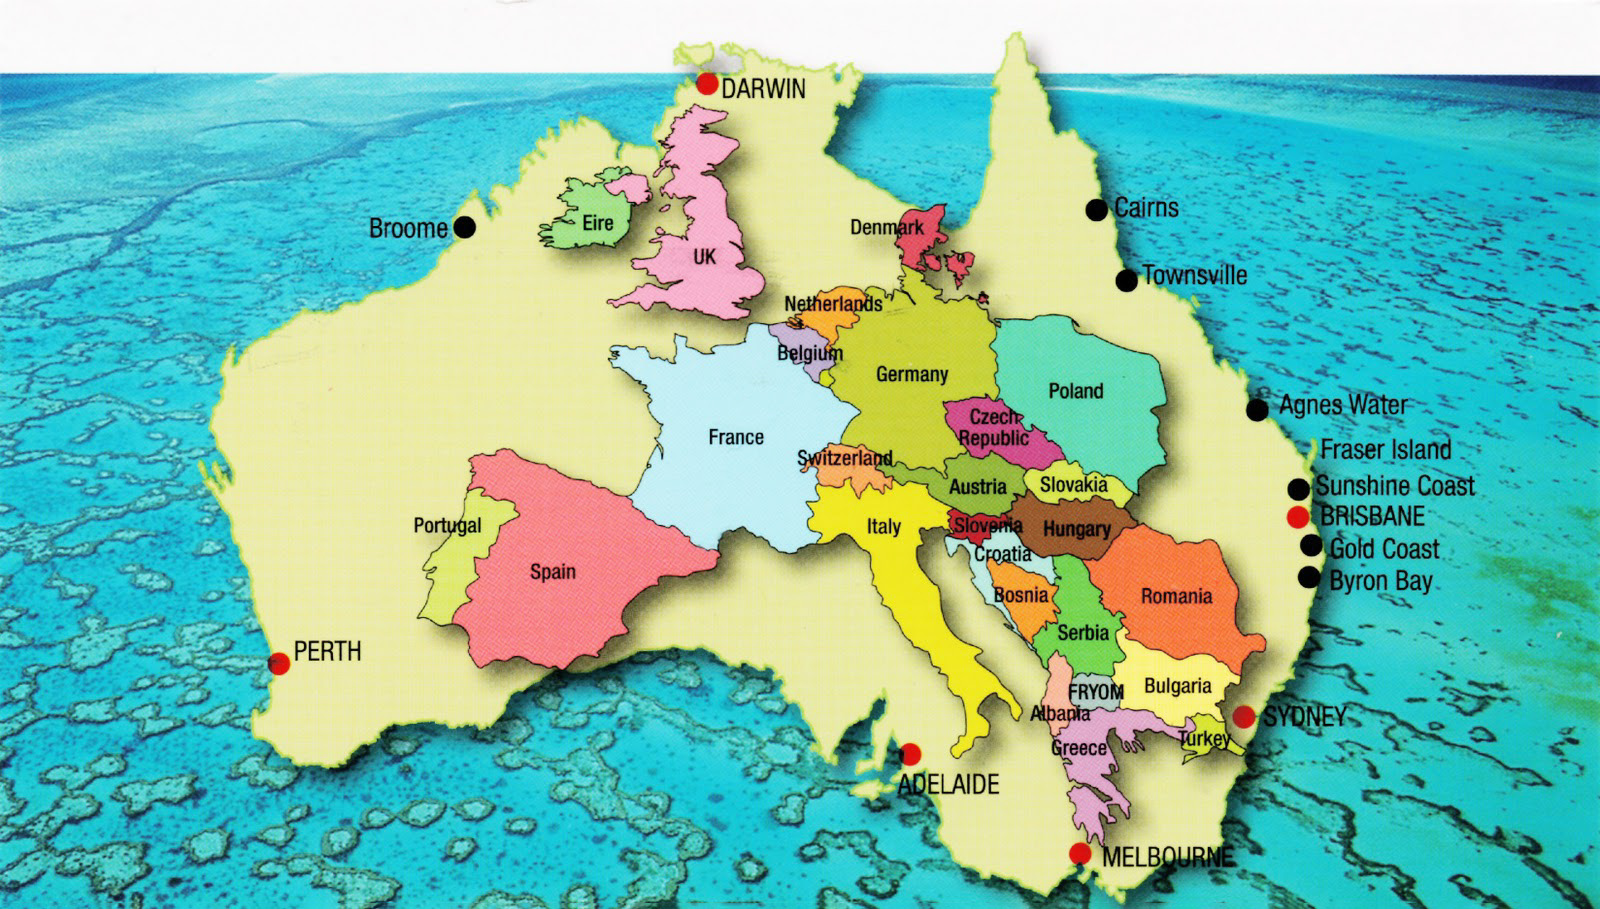 australia-and-europe-area-comparison.jpg